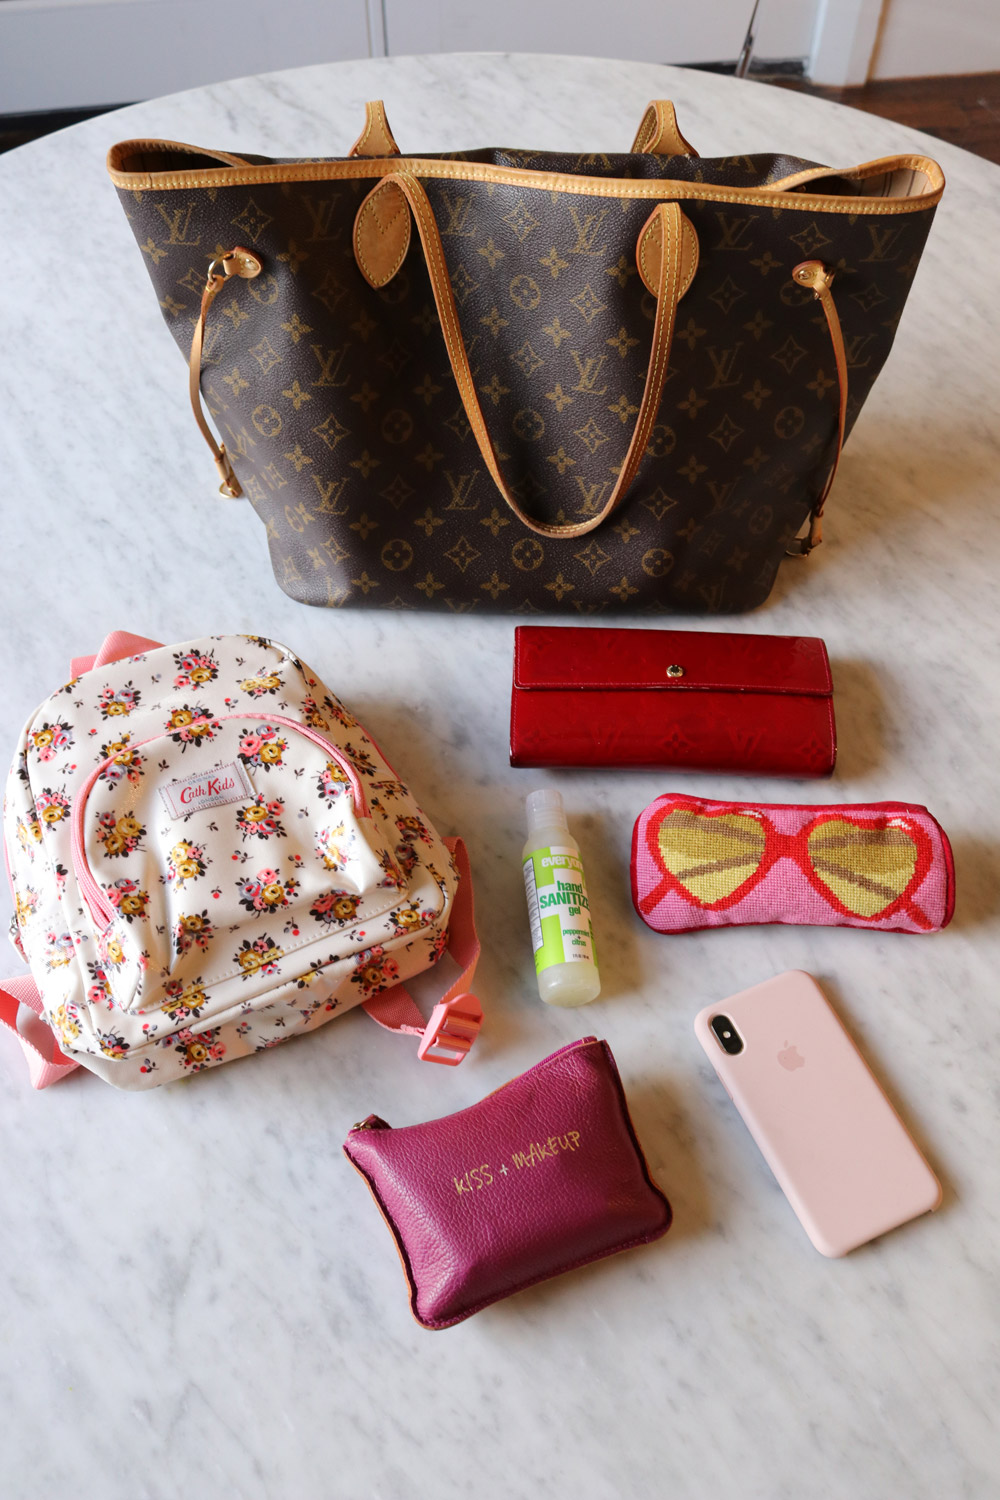 e76d6ab6e5c ... Louis Vuitton Neverfull MM Review what s in my bag ...